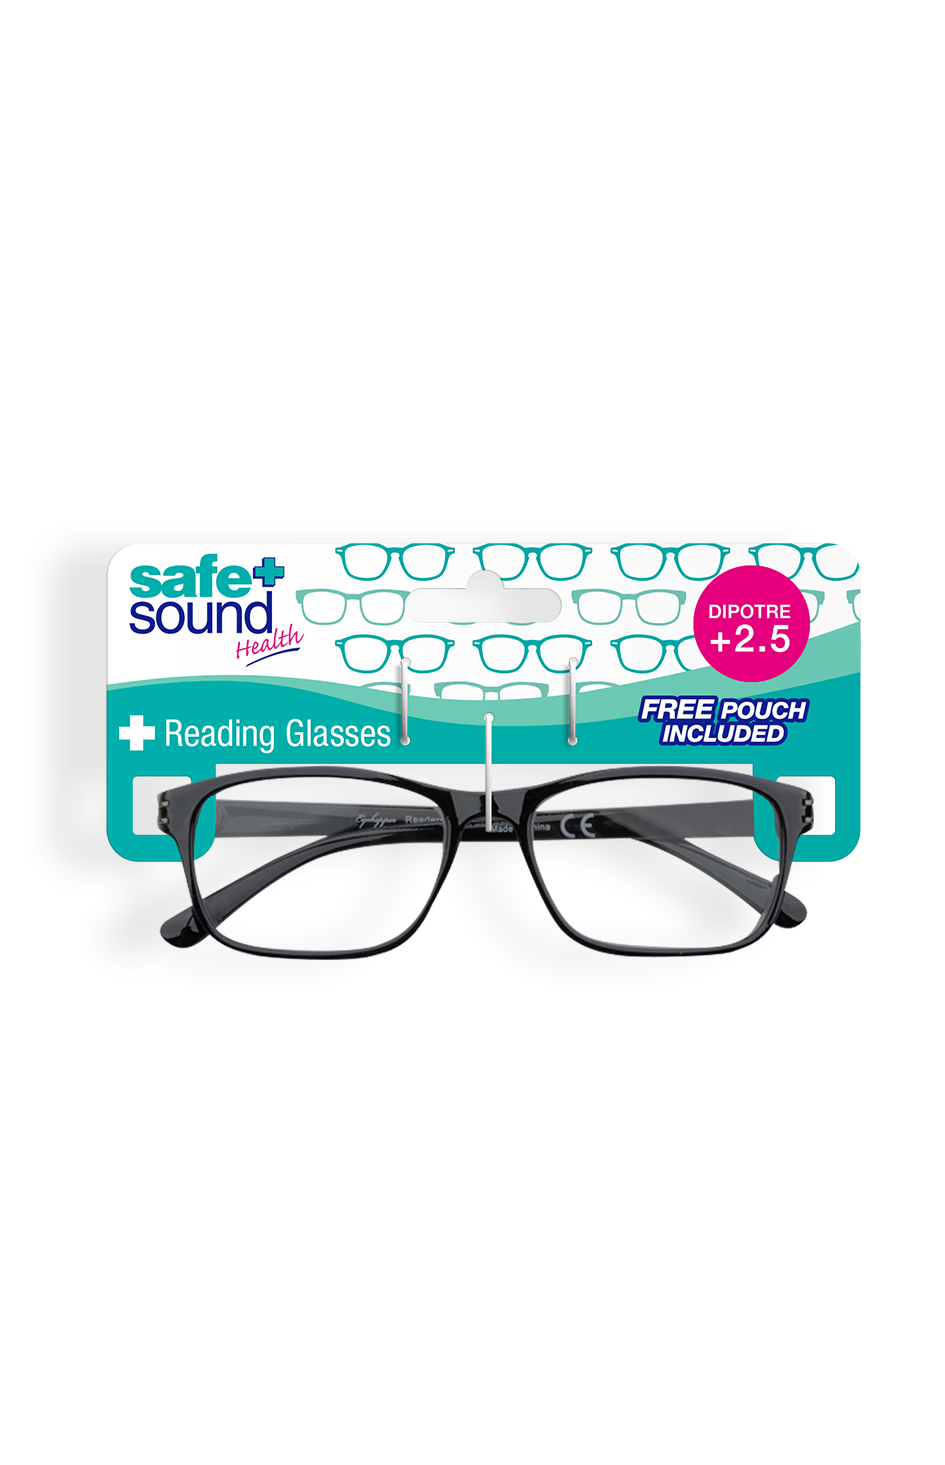 Safe and Sound Health Wayfarer Style Reading Glasses 2.5 Dioptre